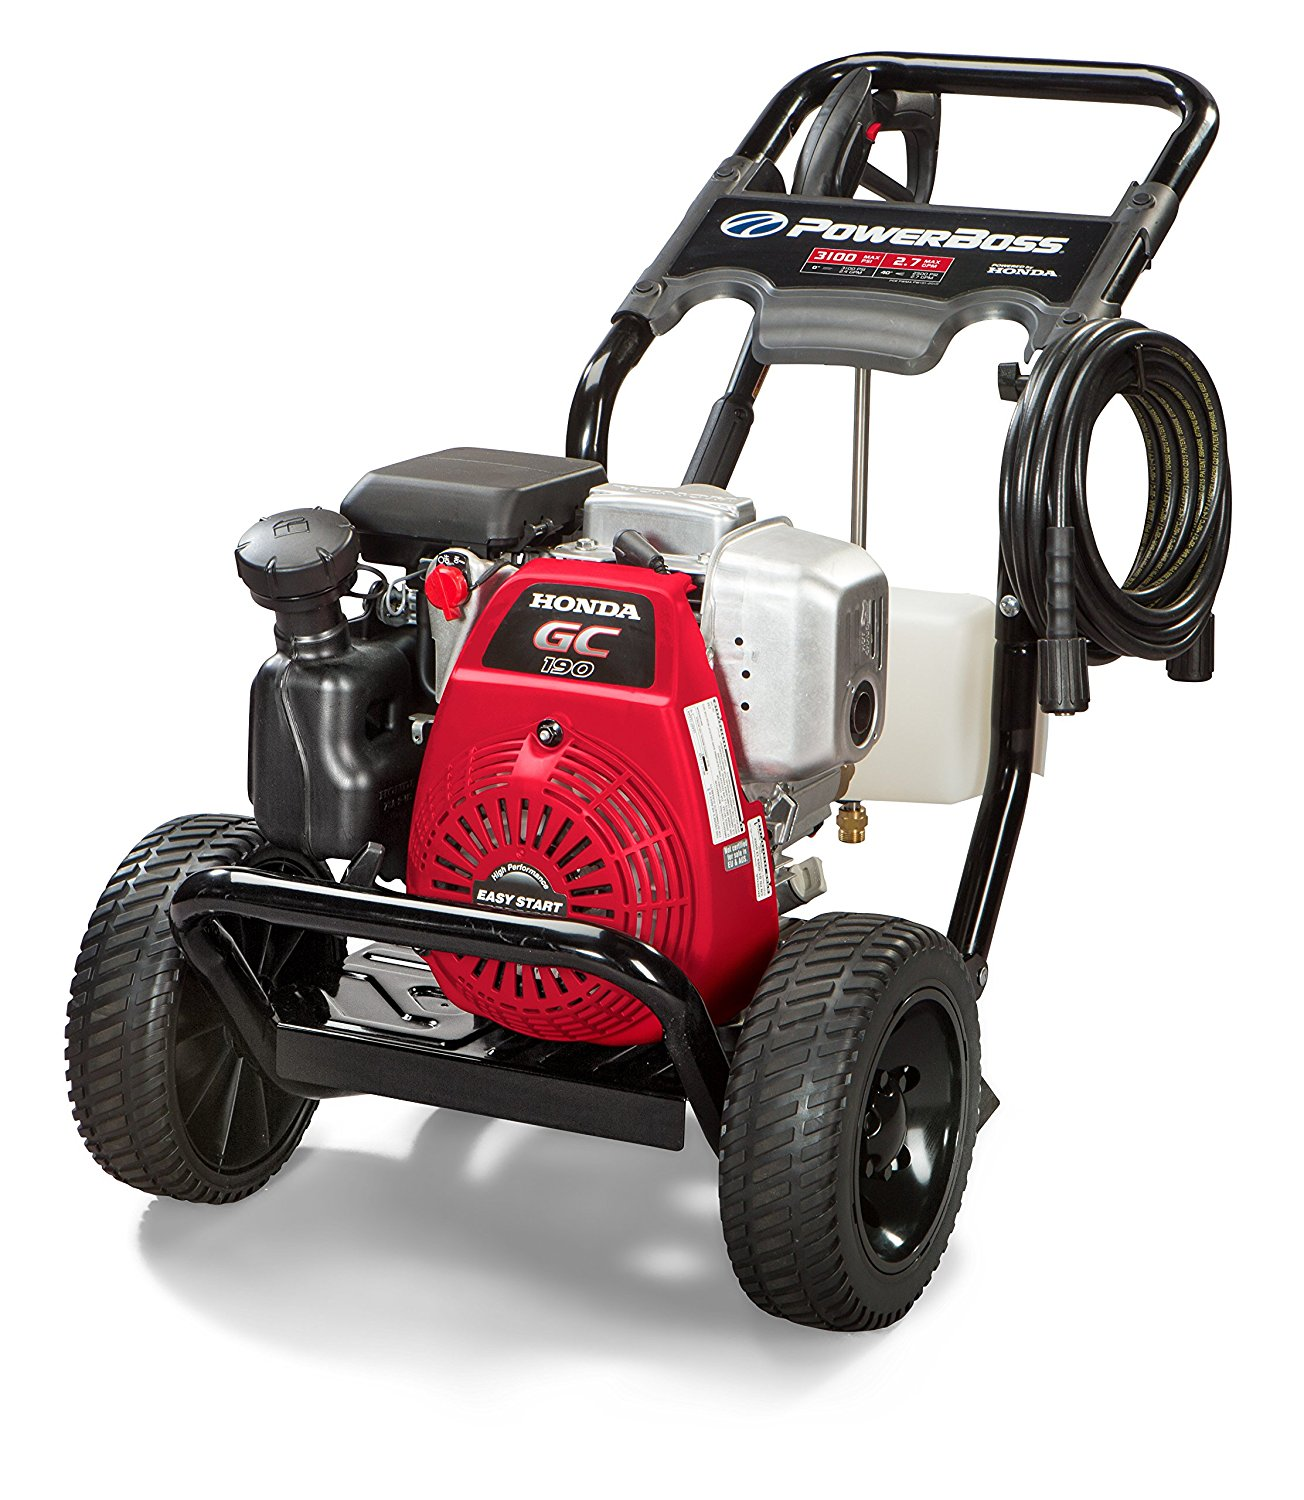 Powerboss 20649 Pressure Washer Review